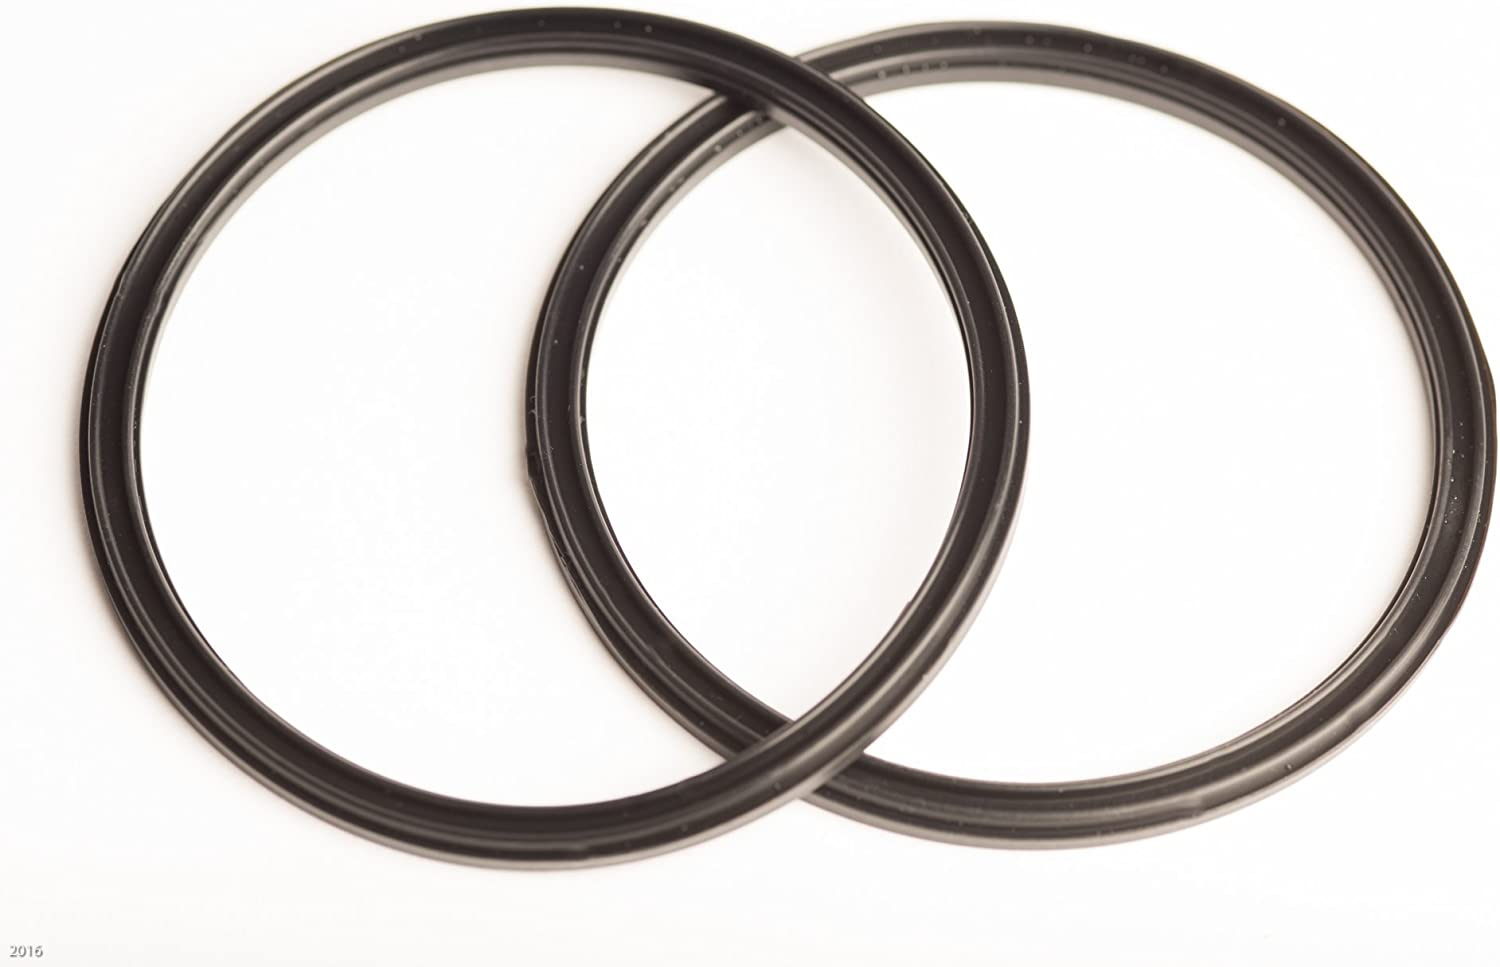 2 Pack New OEM Replacement Rubber Lid Seals for 14 or 30 Ounce Insulated Stainless Steel Tumbler Lids Such As Yeti RTIC Ozark Trail Mossy Oak Atlin Beast